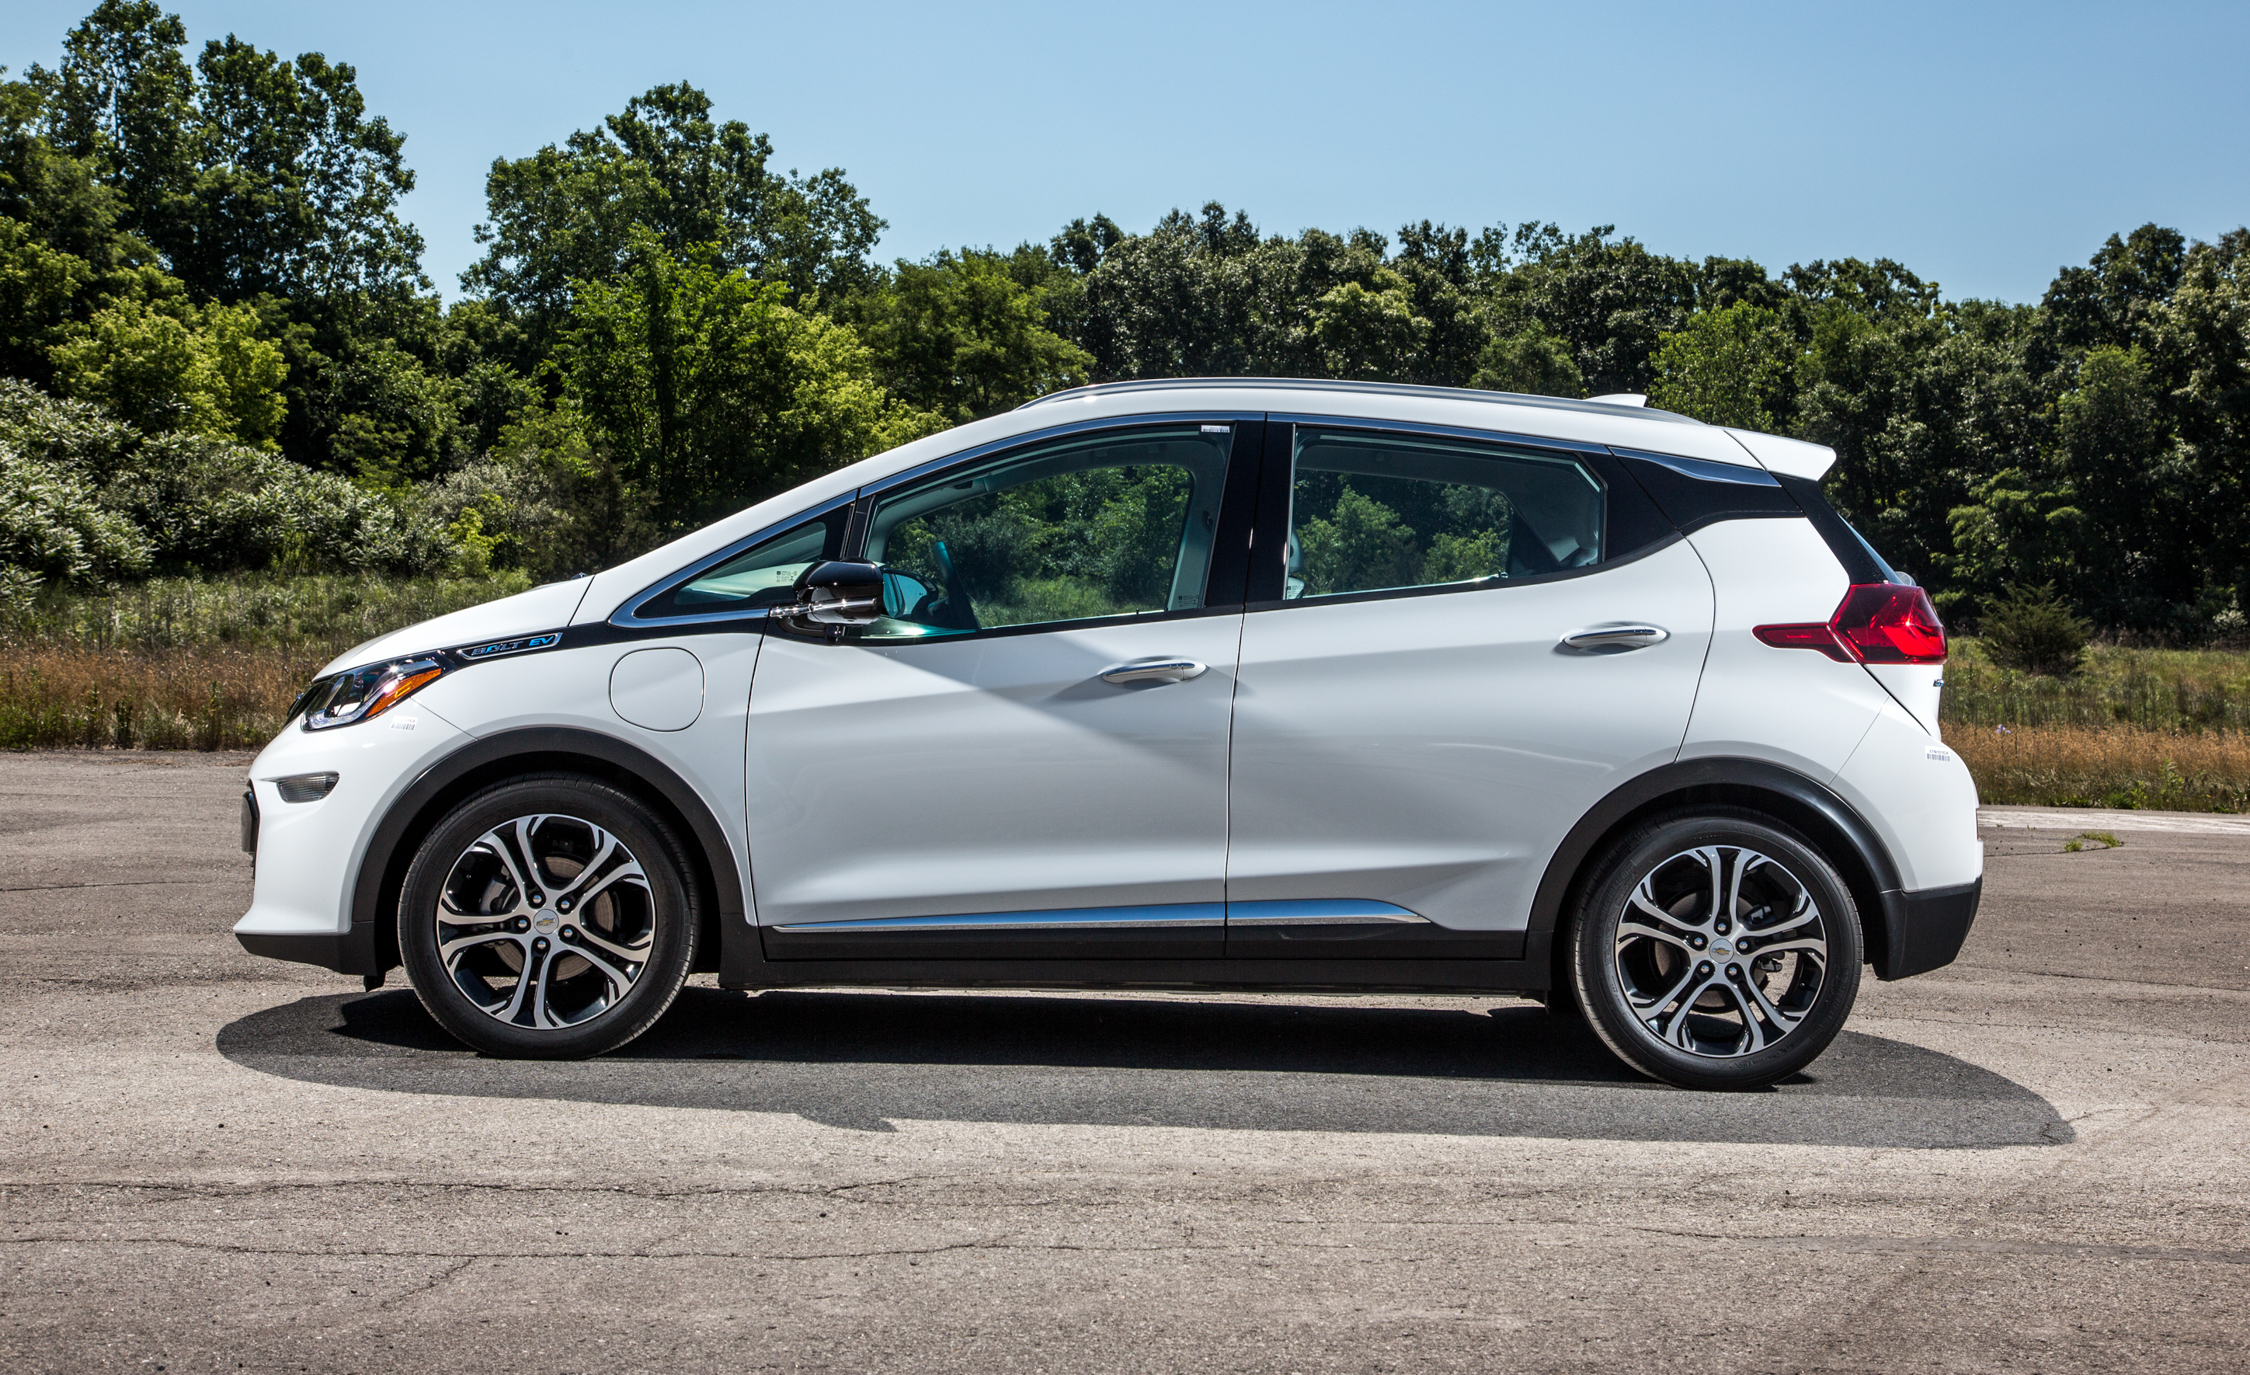 2017 Chevrolet Bolt Ev Exterior Side (View 10 of 12)